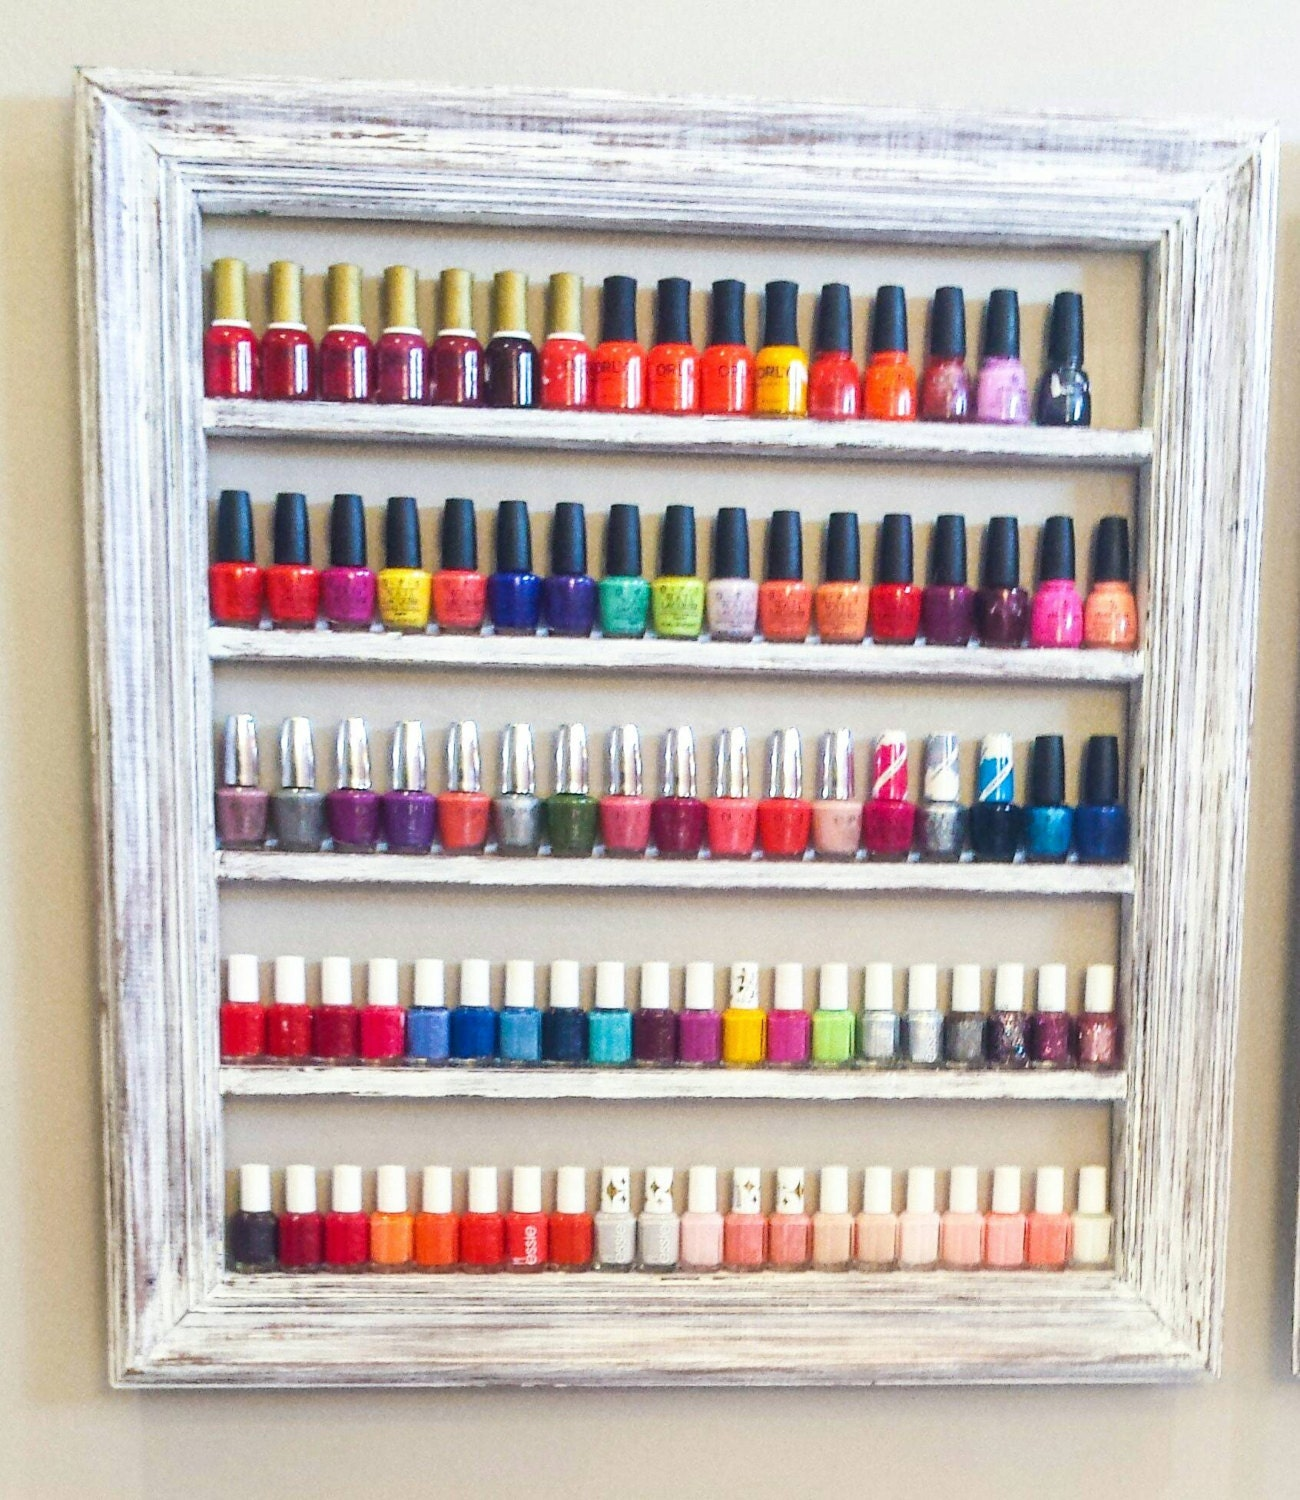 Nail Polish Rack Nail Polish Organizer Nail Polish Shelf